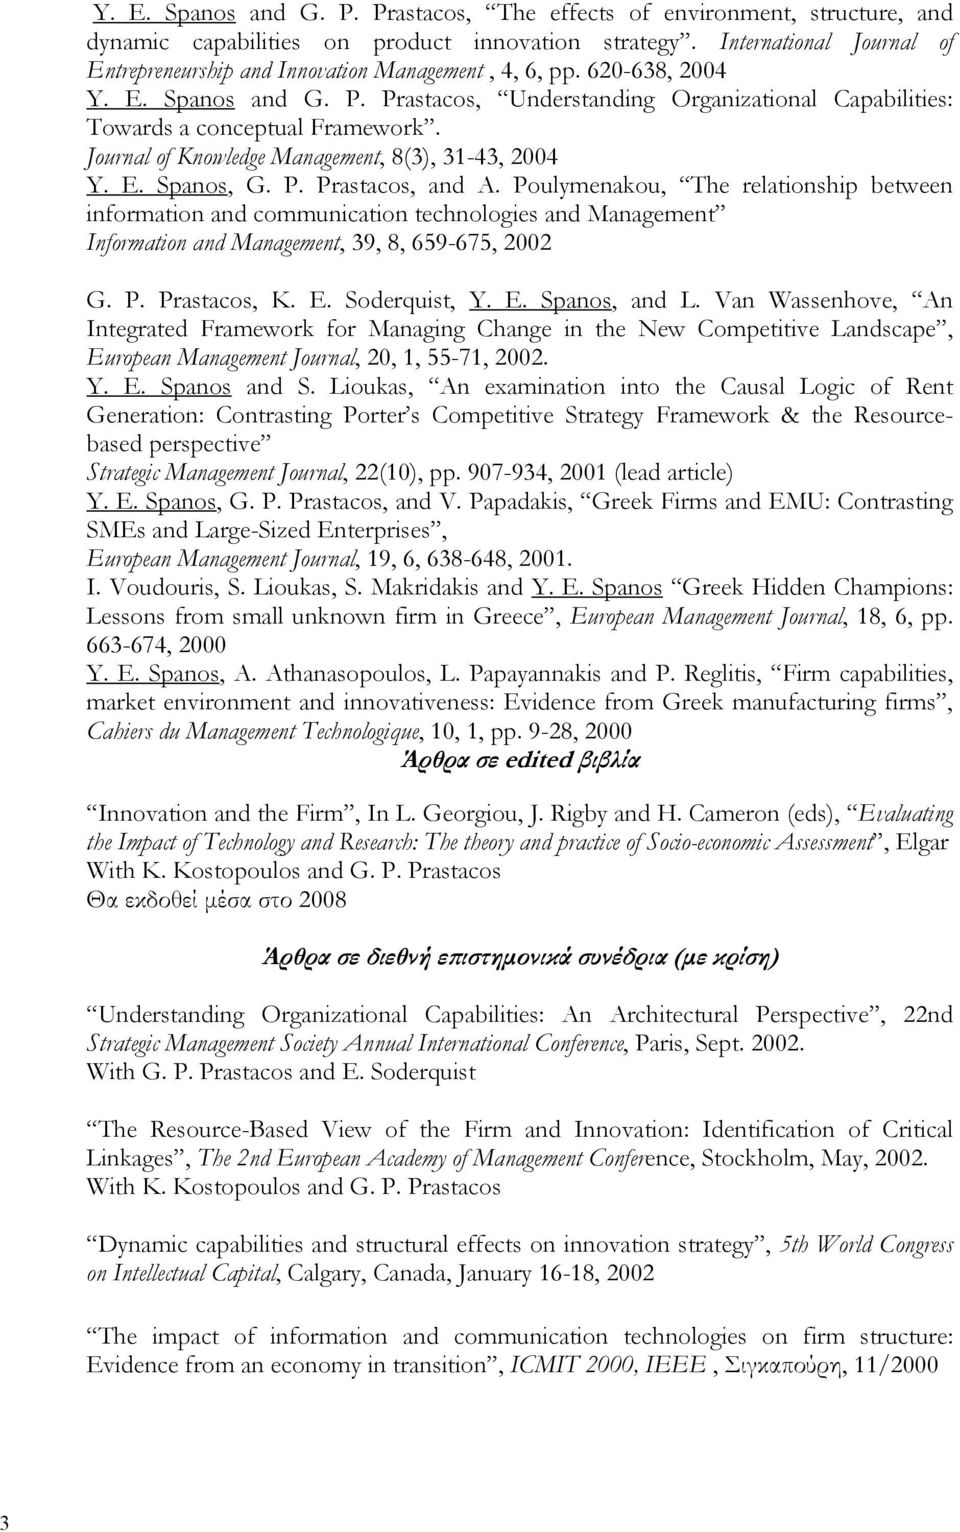 Prastacos, Understanding Organizational Capabilities: Towards a conceptual Framework. Journal of Knowledge Management, 8(3), 31-43, 2004 Y. E. Spanos, G. P. Prastacos, and A.